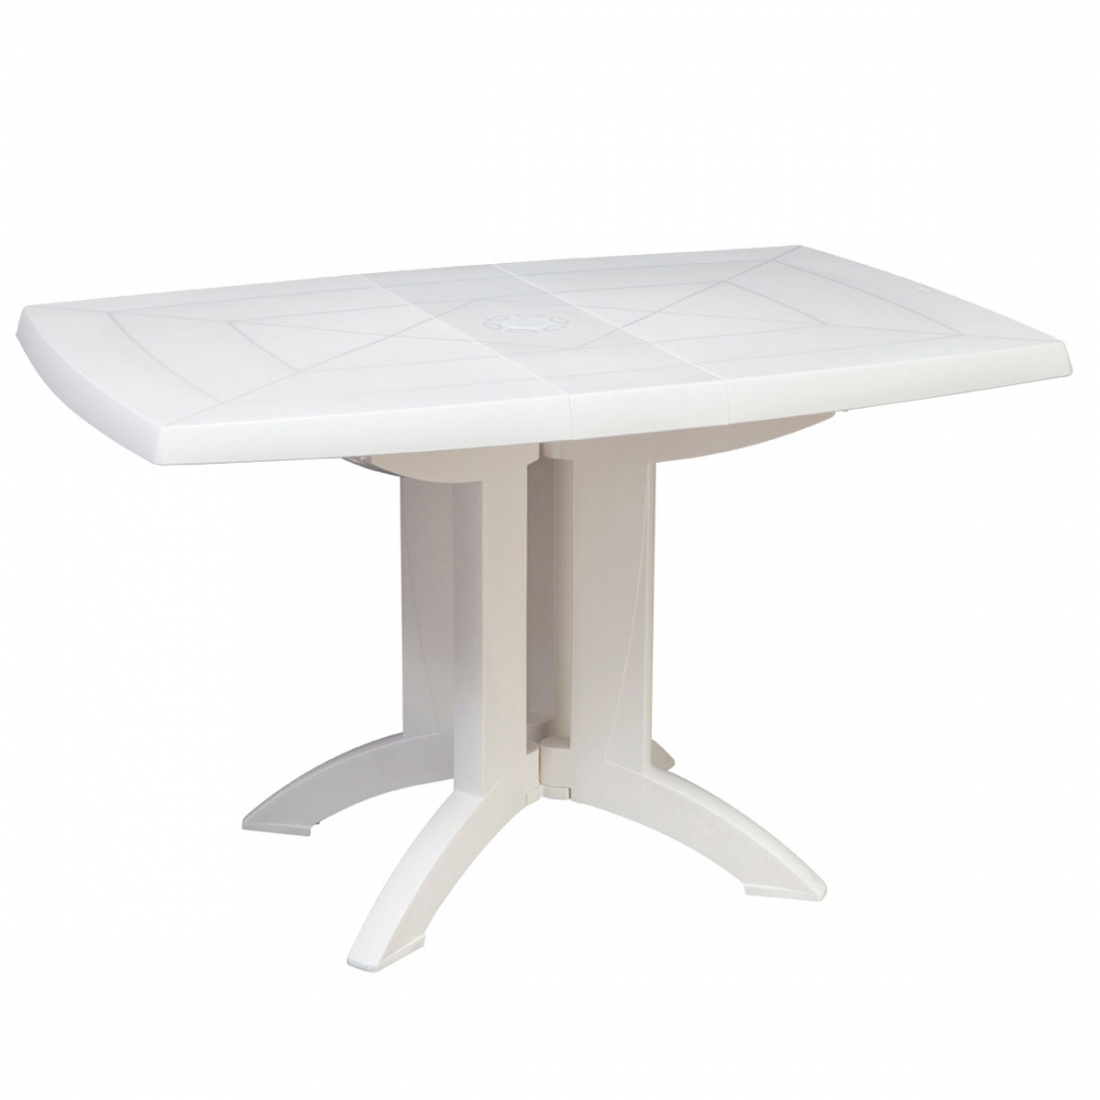 Table de jardin pliante vega grosfillex - Table de jardin pliante ...